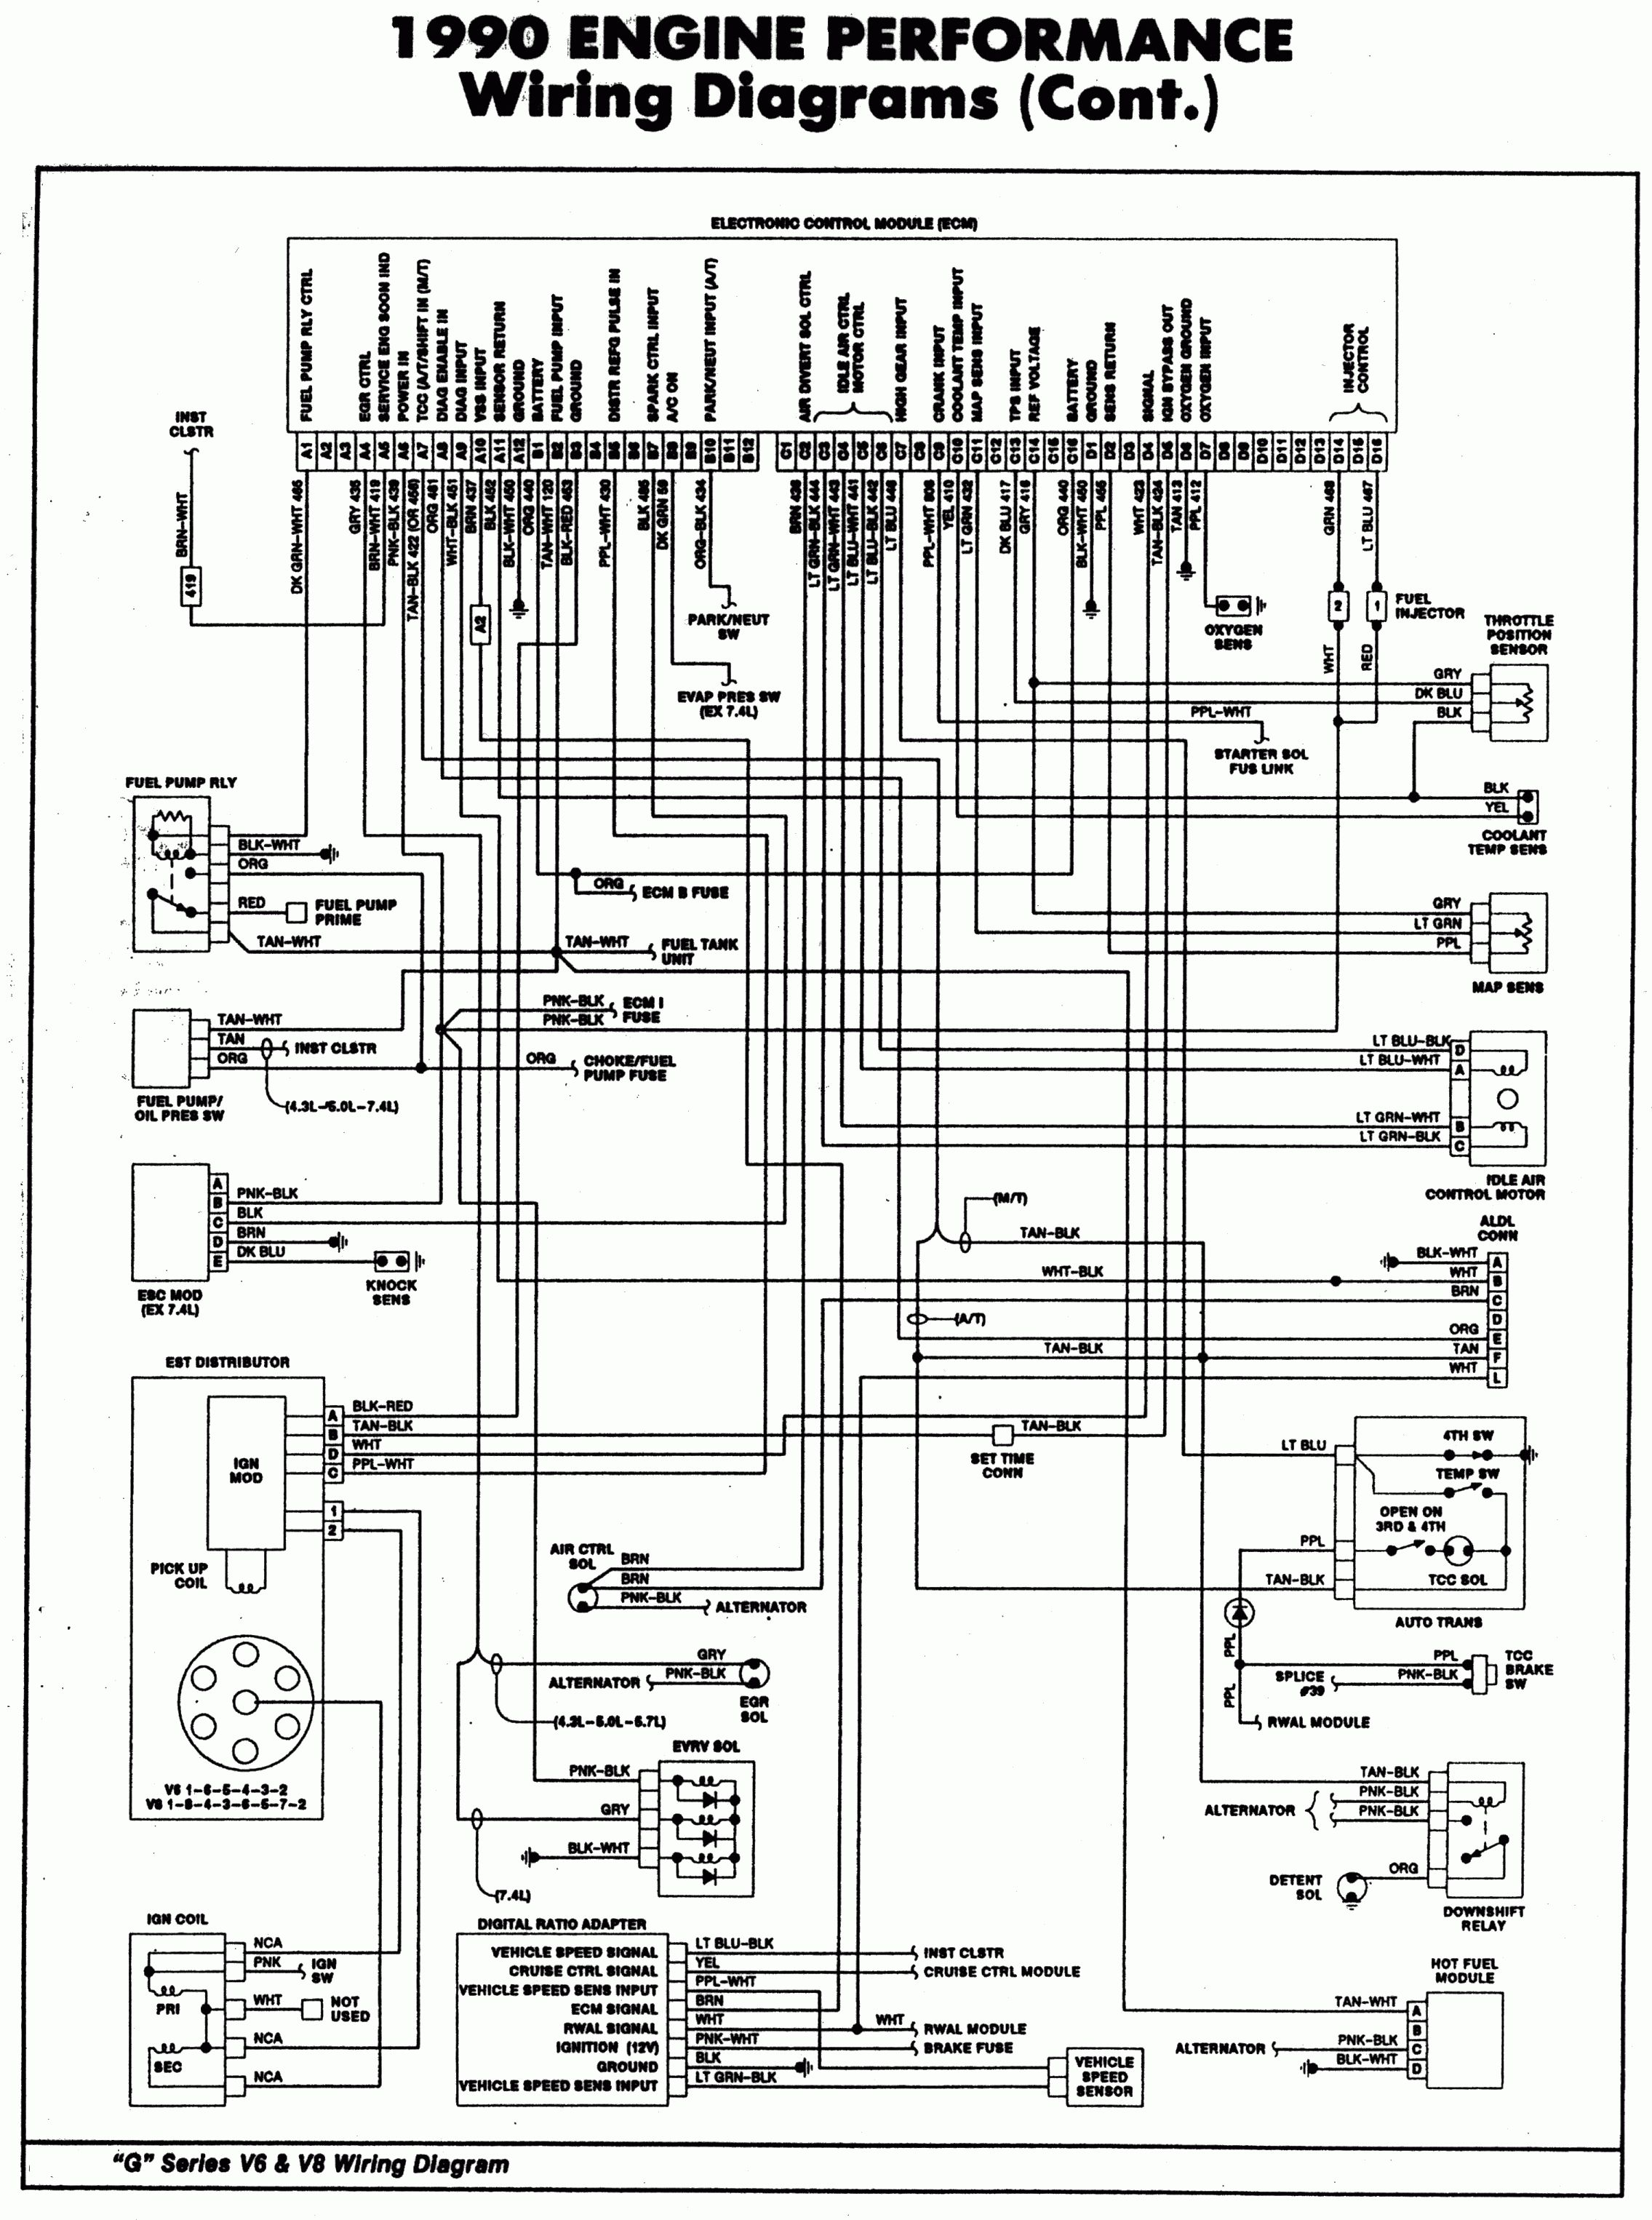 hight resolution of 1990 engine performance wiring diagram with control module and pertaining to throttle position sensor wiring diagram